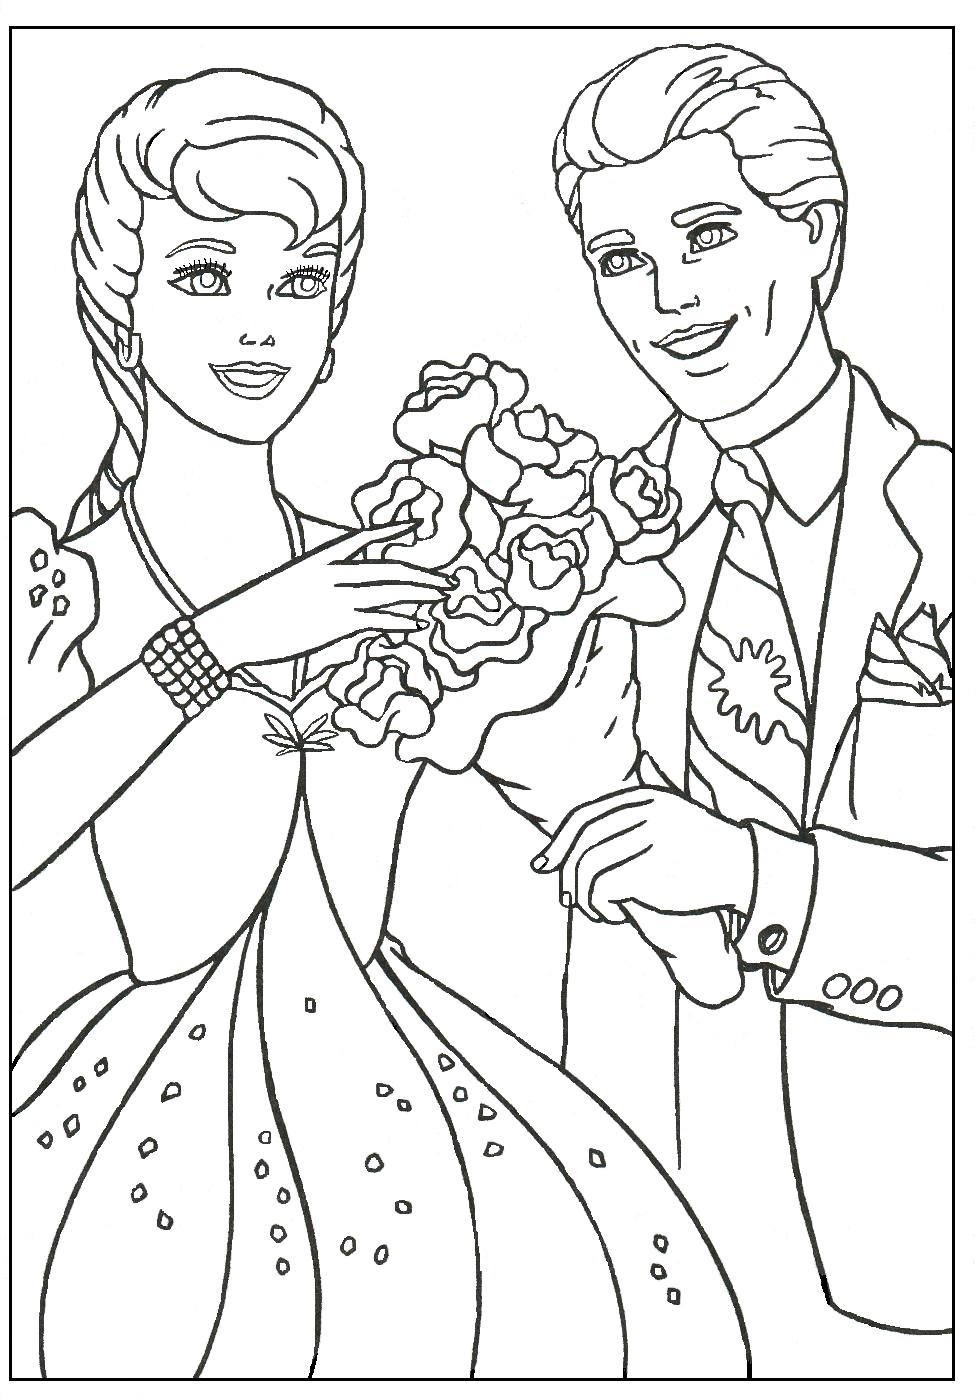 BARBIE COLORING PAGES: KEN AND BARBIE